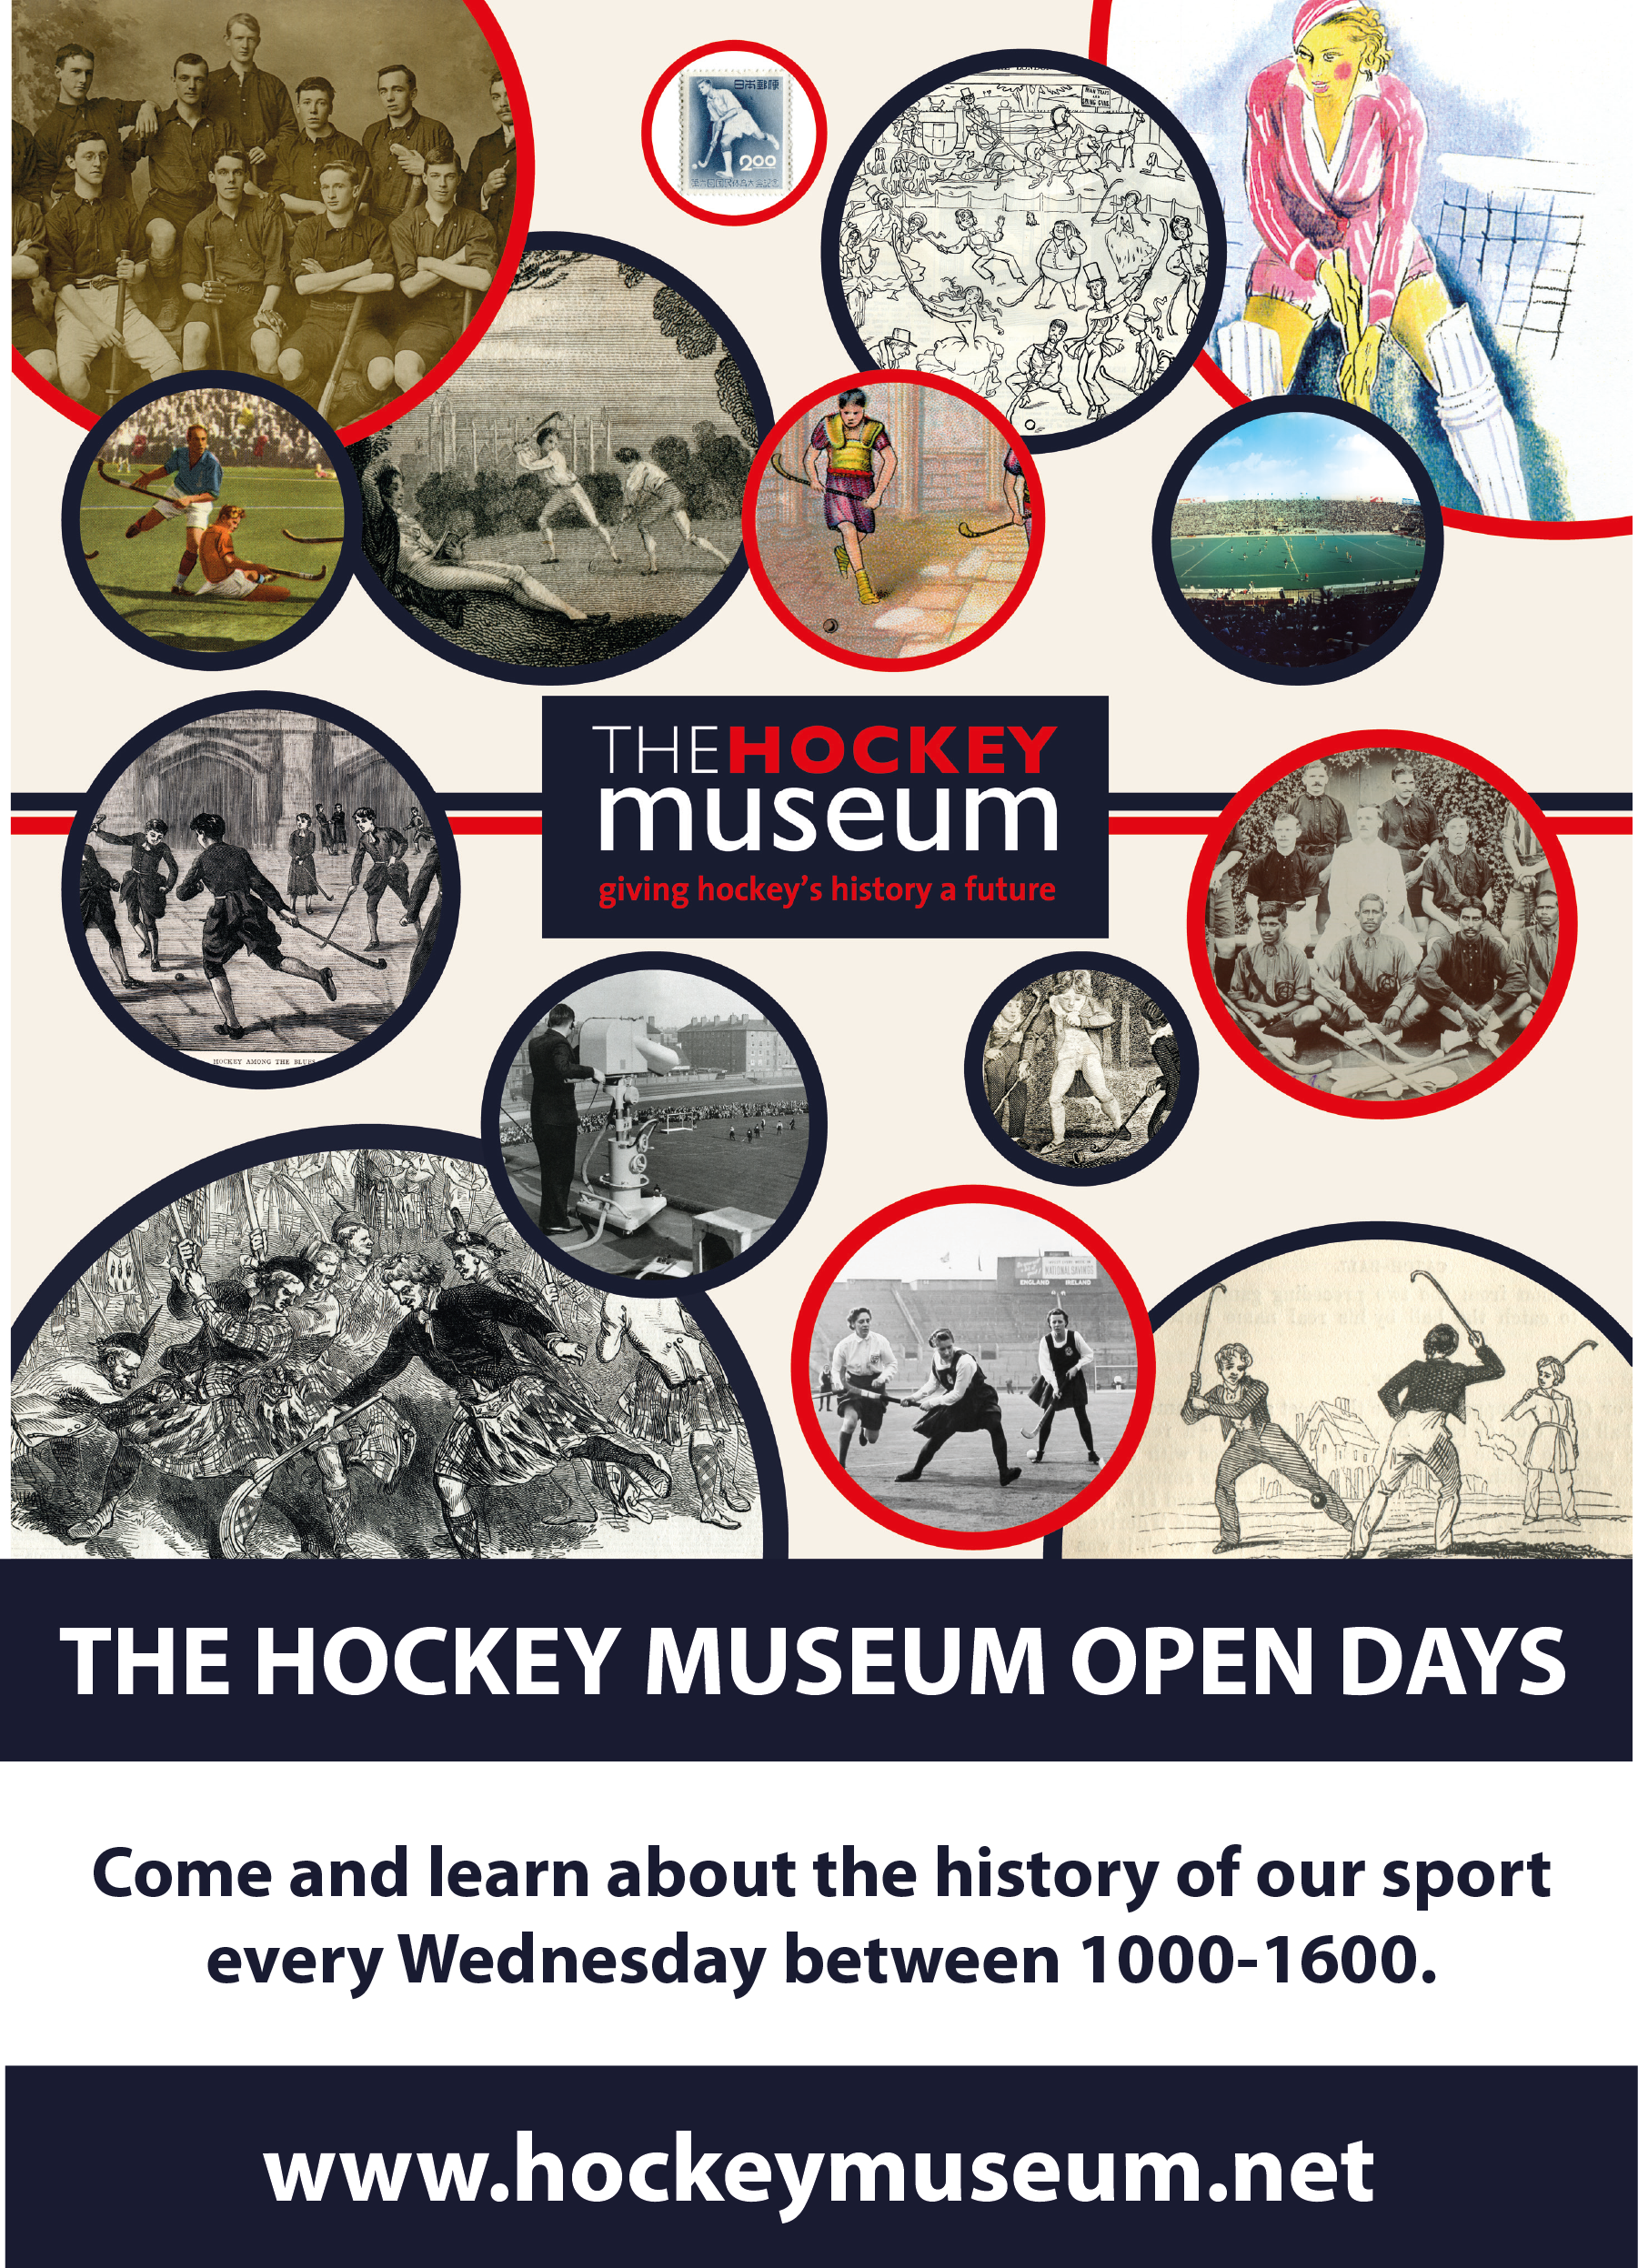 The Hockey Museum Open Days undated A3 poster 201706